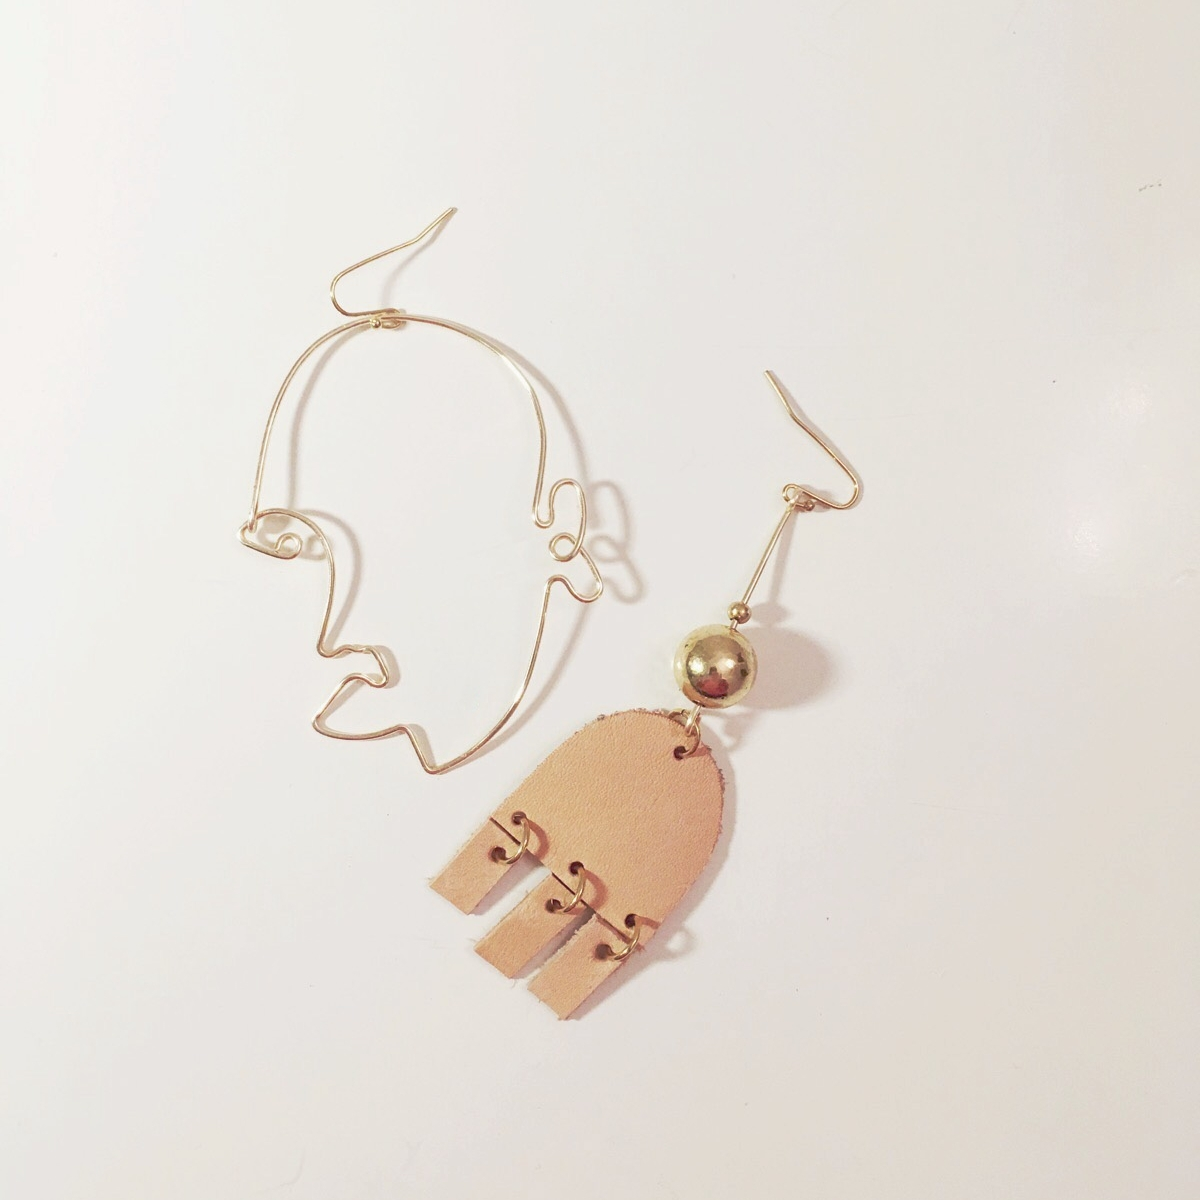 LEATHER SILHOUETTE EARRING SET  WHOLESALE $65  SRP $120